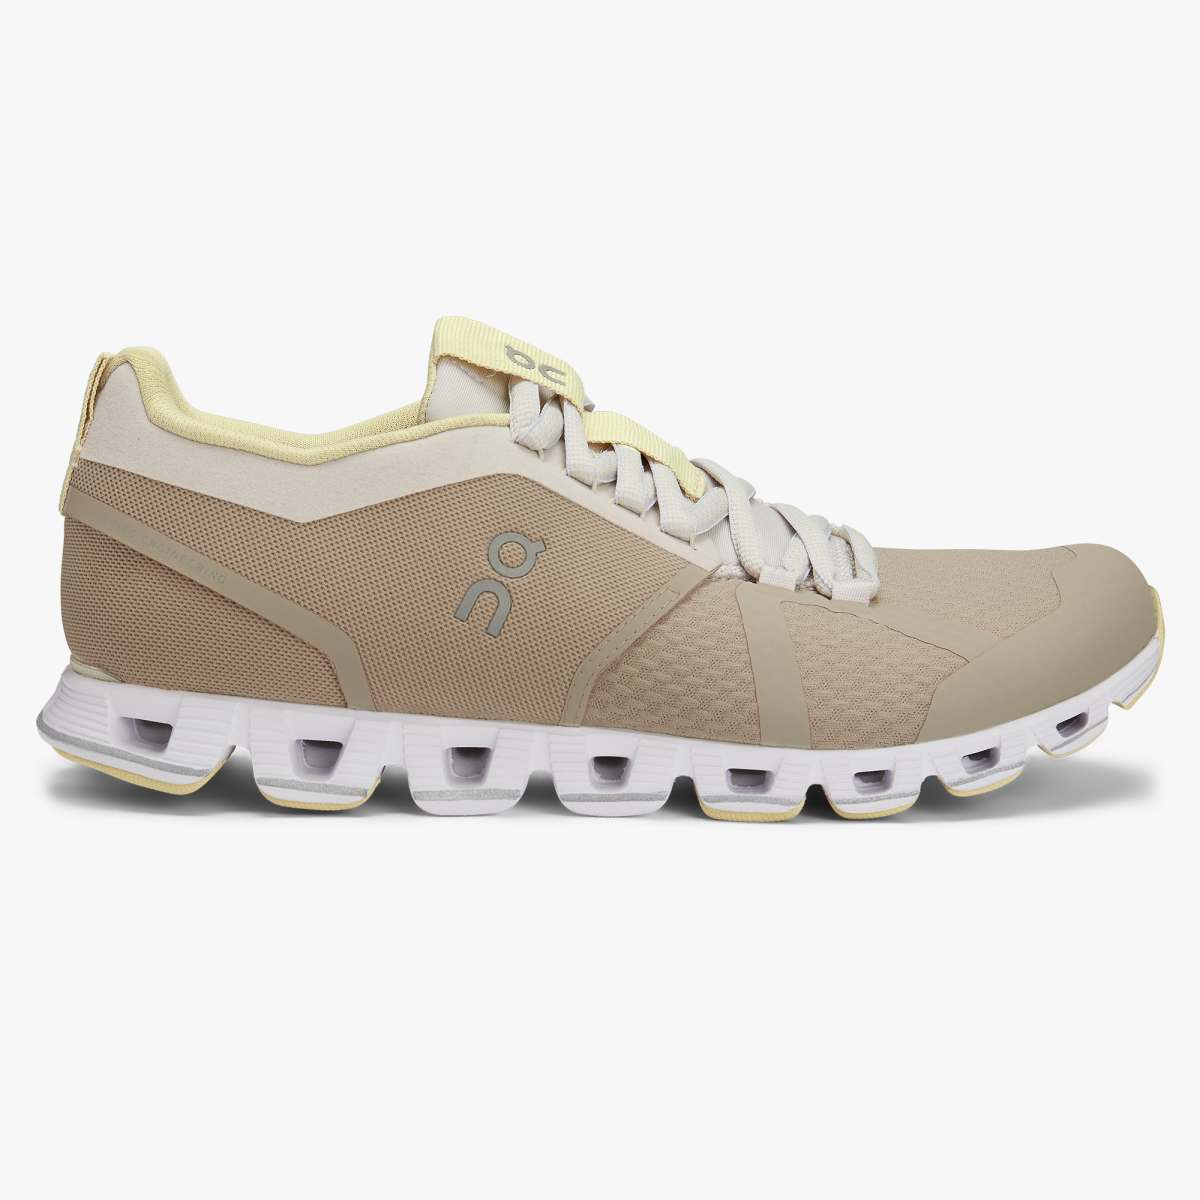 'On Running' Women's Cloud - Sand / Pearl